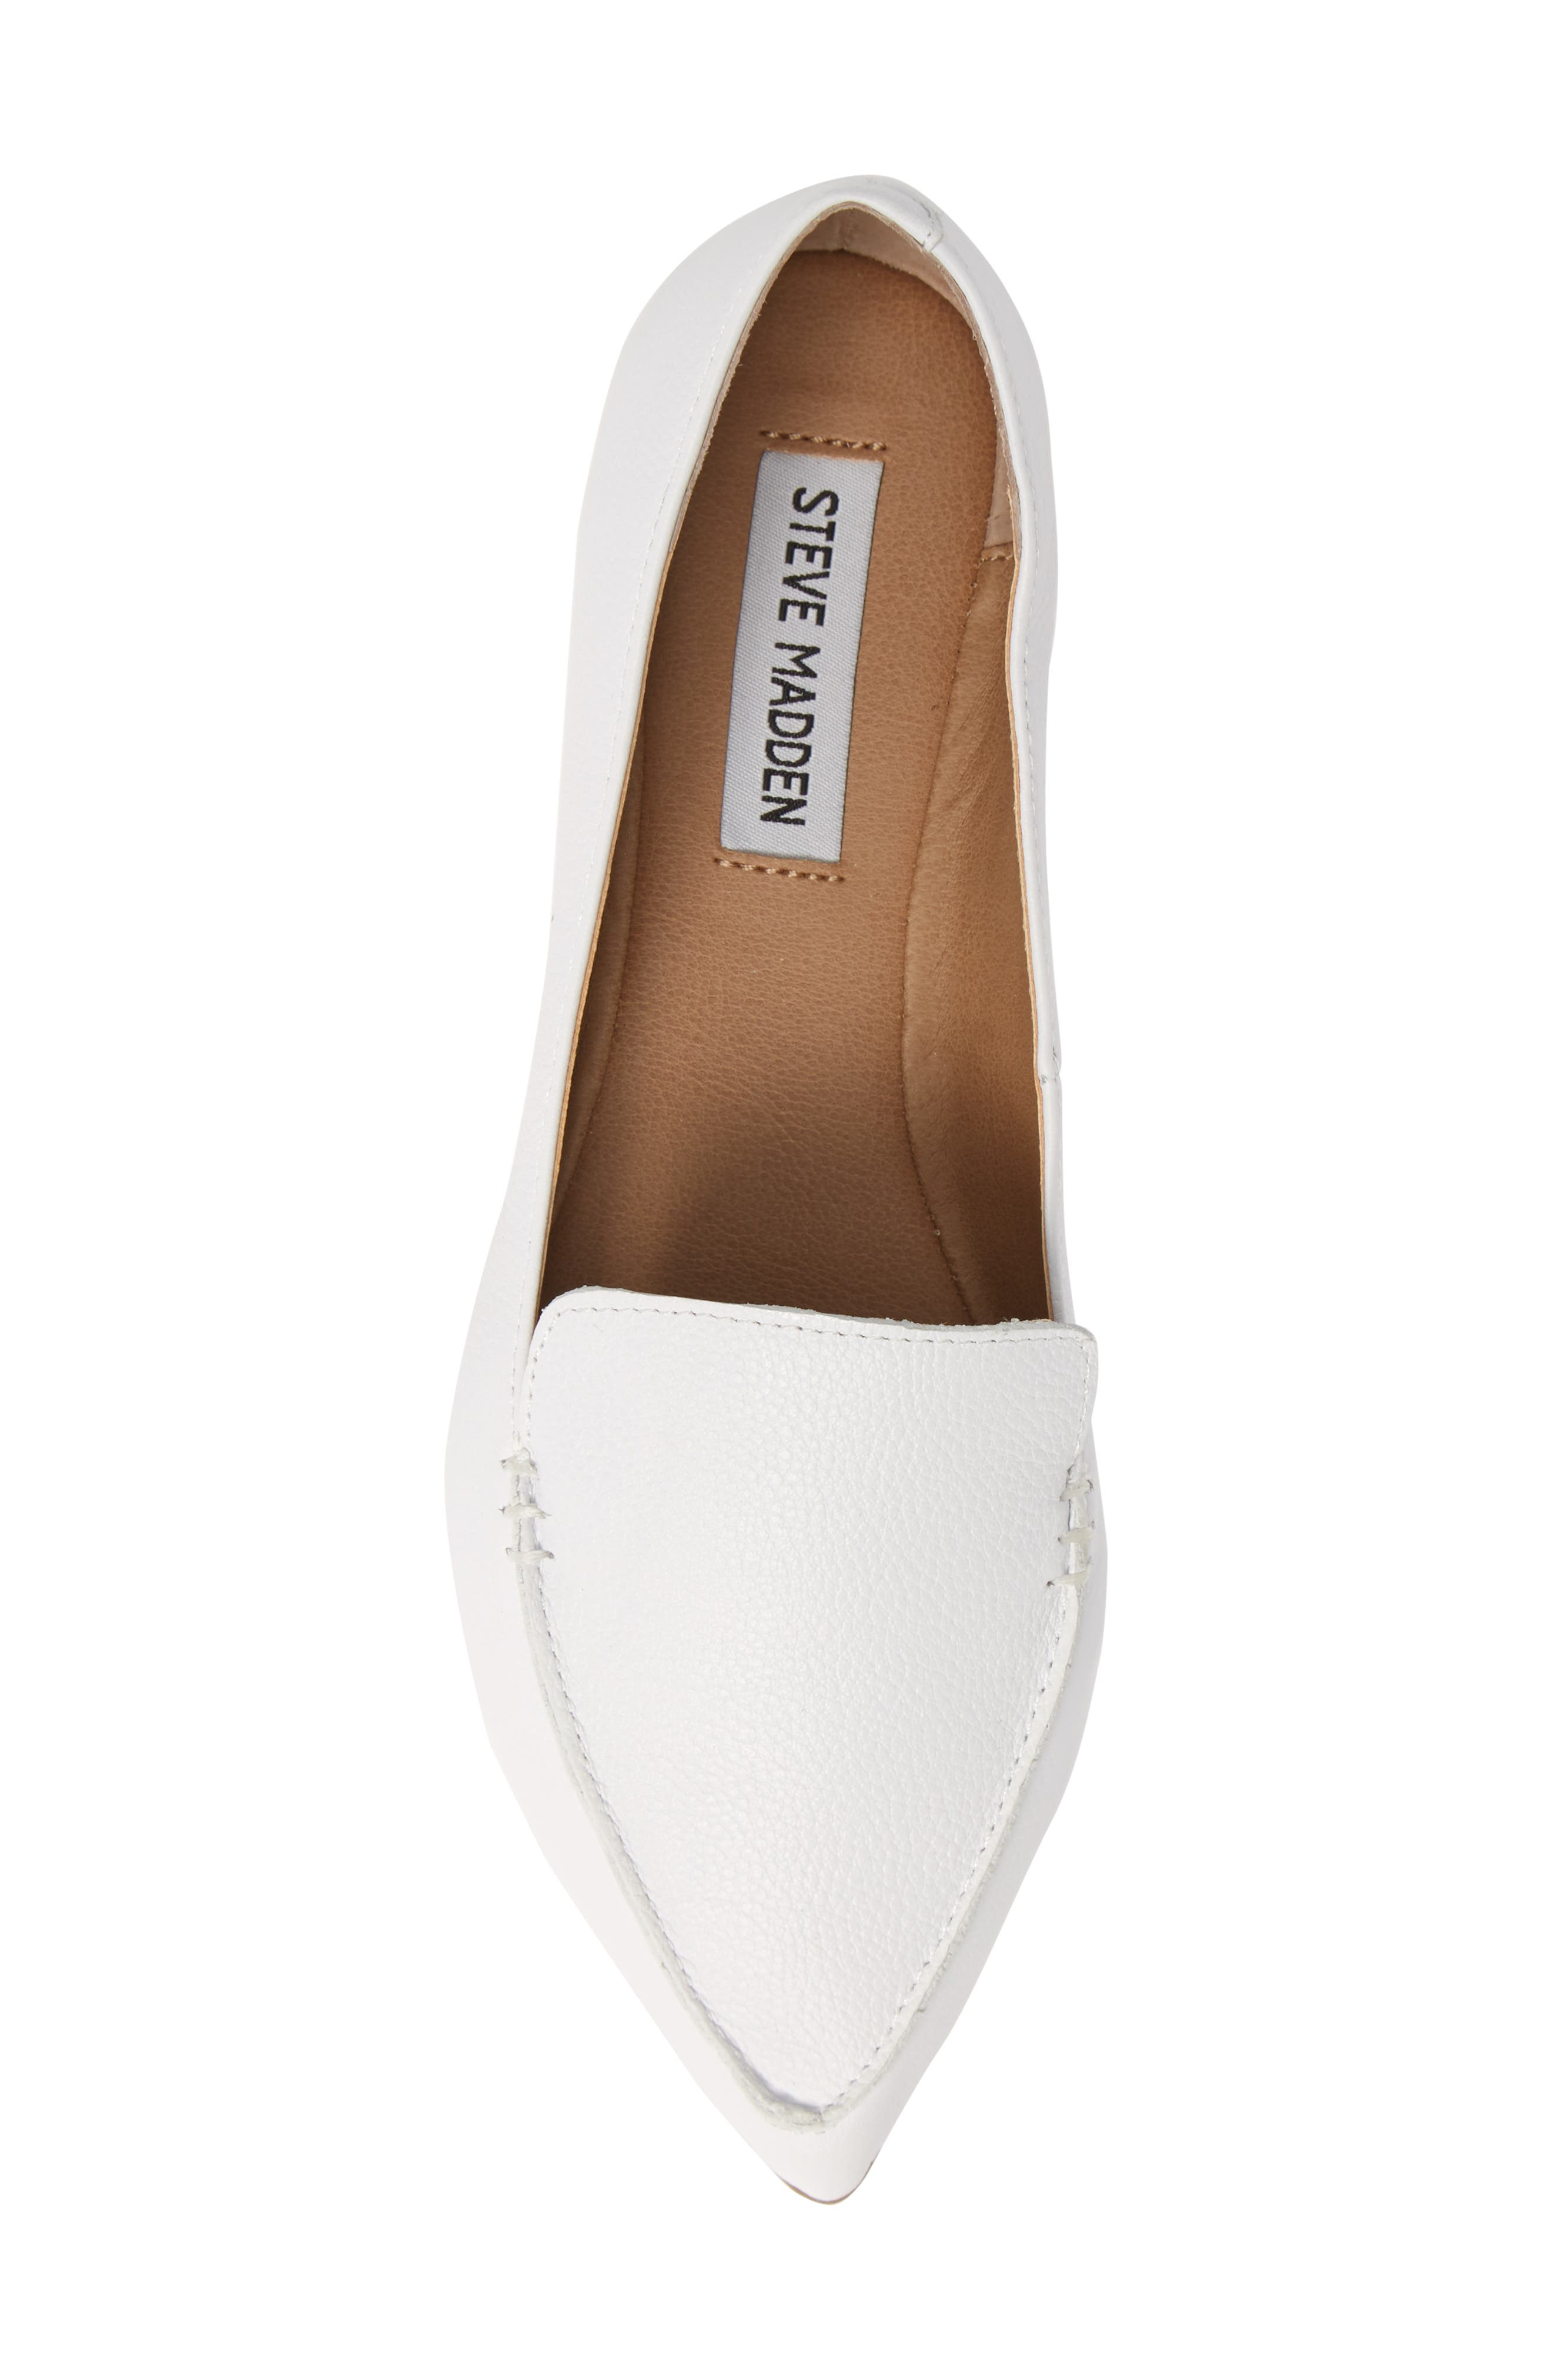 STEVE MADDEN,                             Feather Loafer Flat,                             Alternate thumbnail 5, color,                             WHITE LEATHER